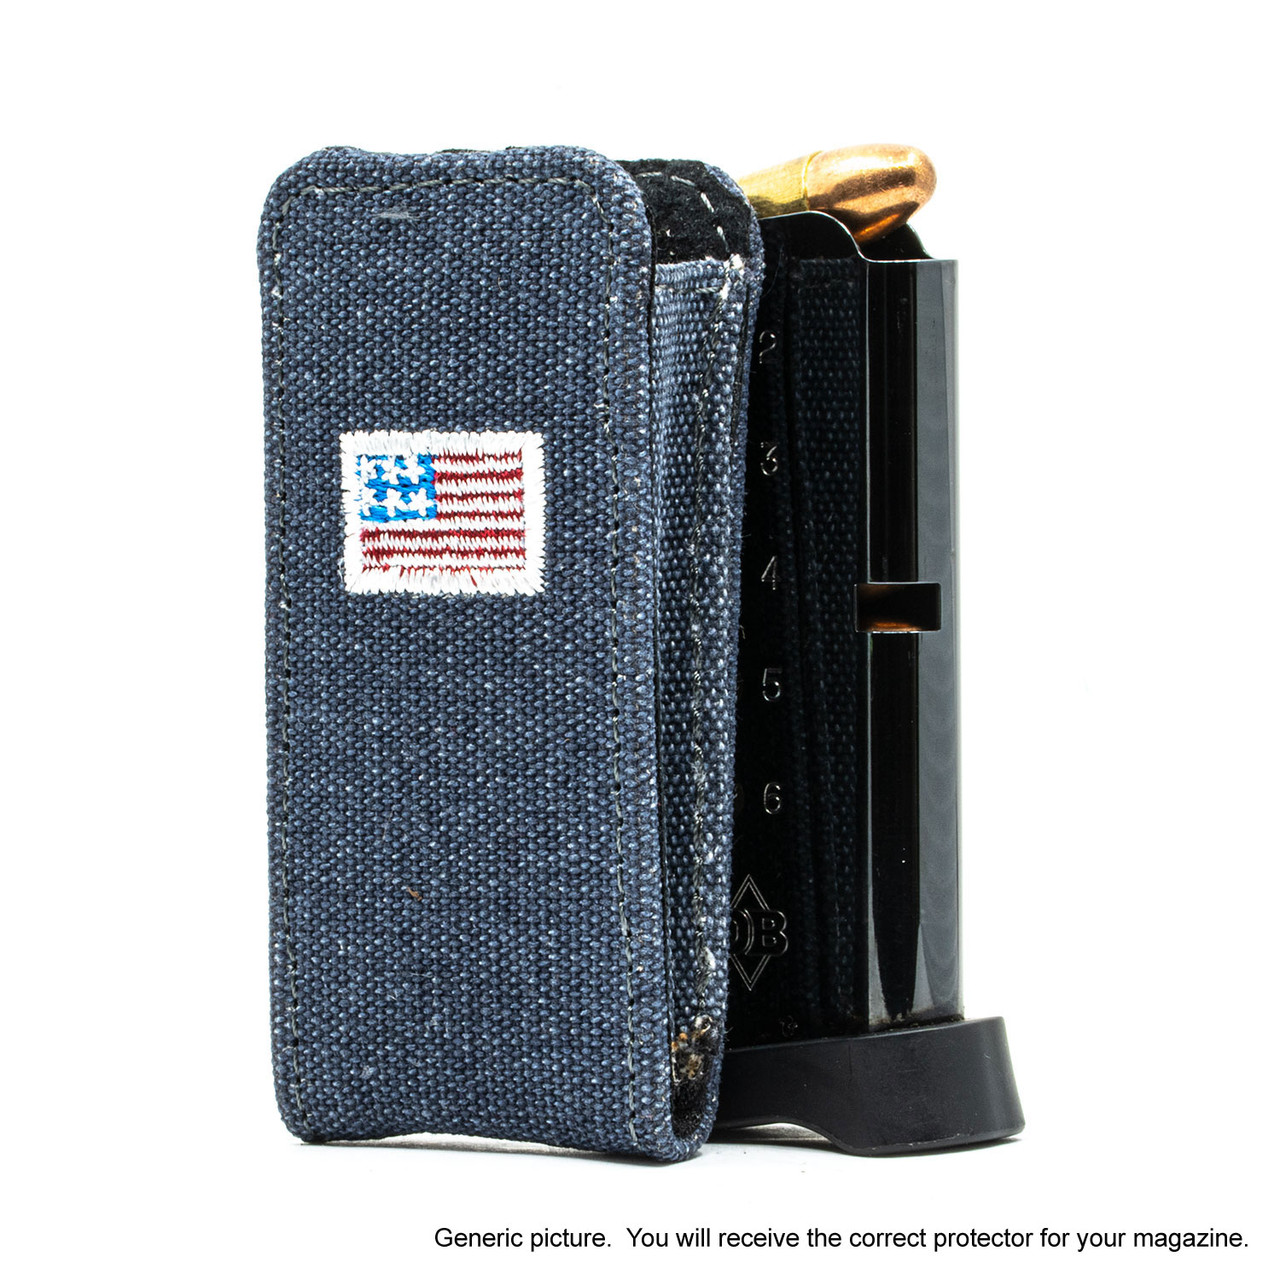 Beretta APX Carry Holsters Denim Canvas Flag Magazine Pocket Protector